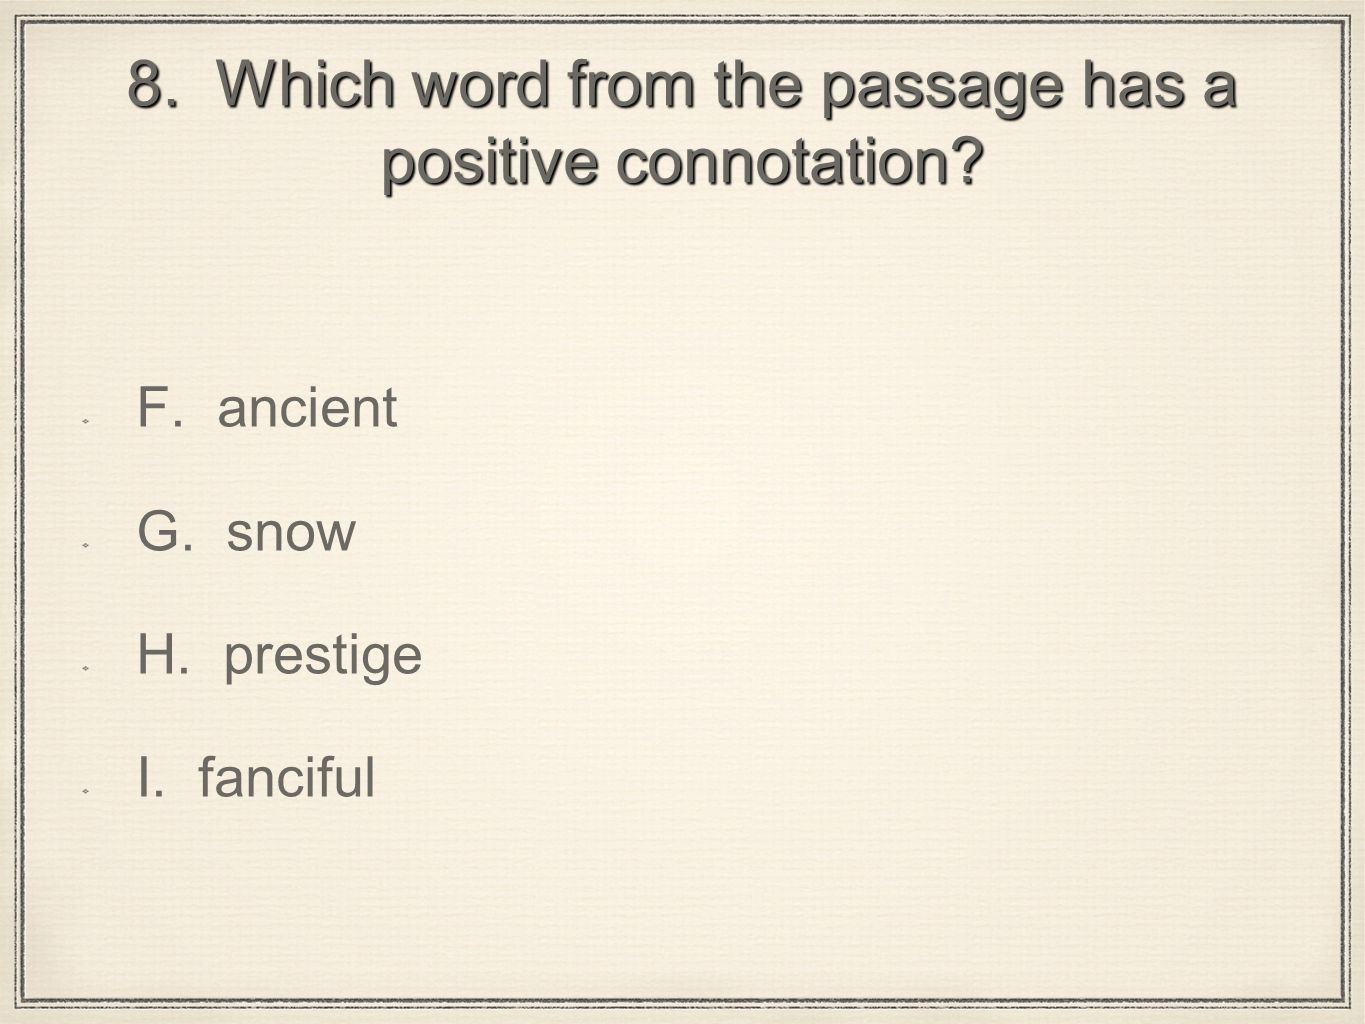 8. Which word from the passage has a positive connotation